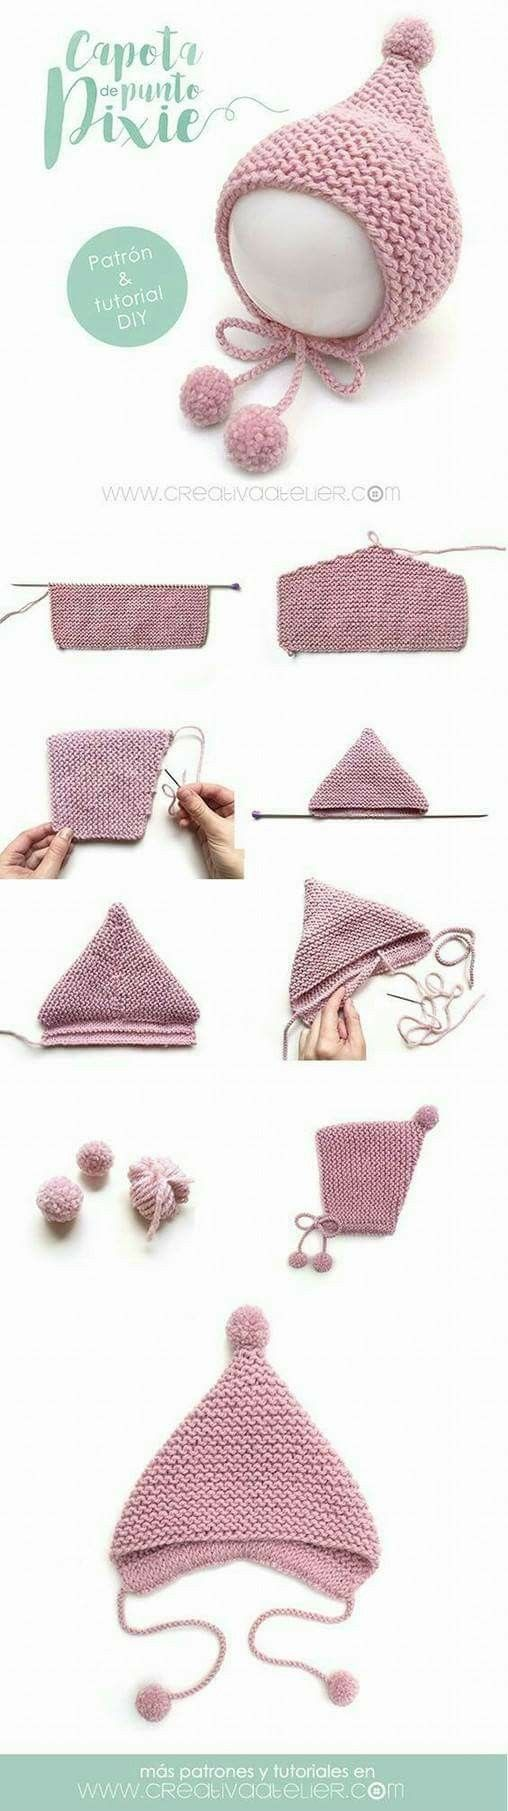 28 best καπέλα images on Pinterest | Beanies, Hand crafts and Knit ...